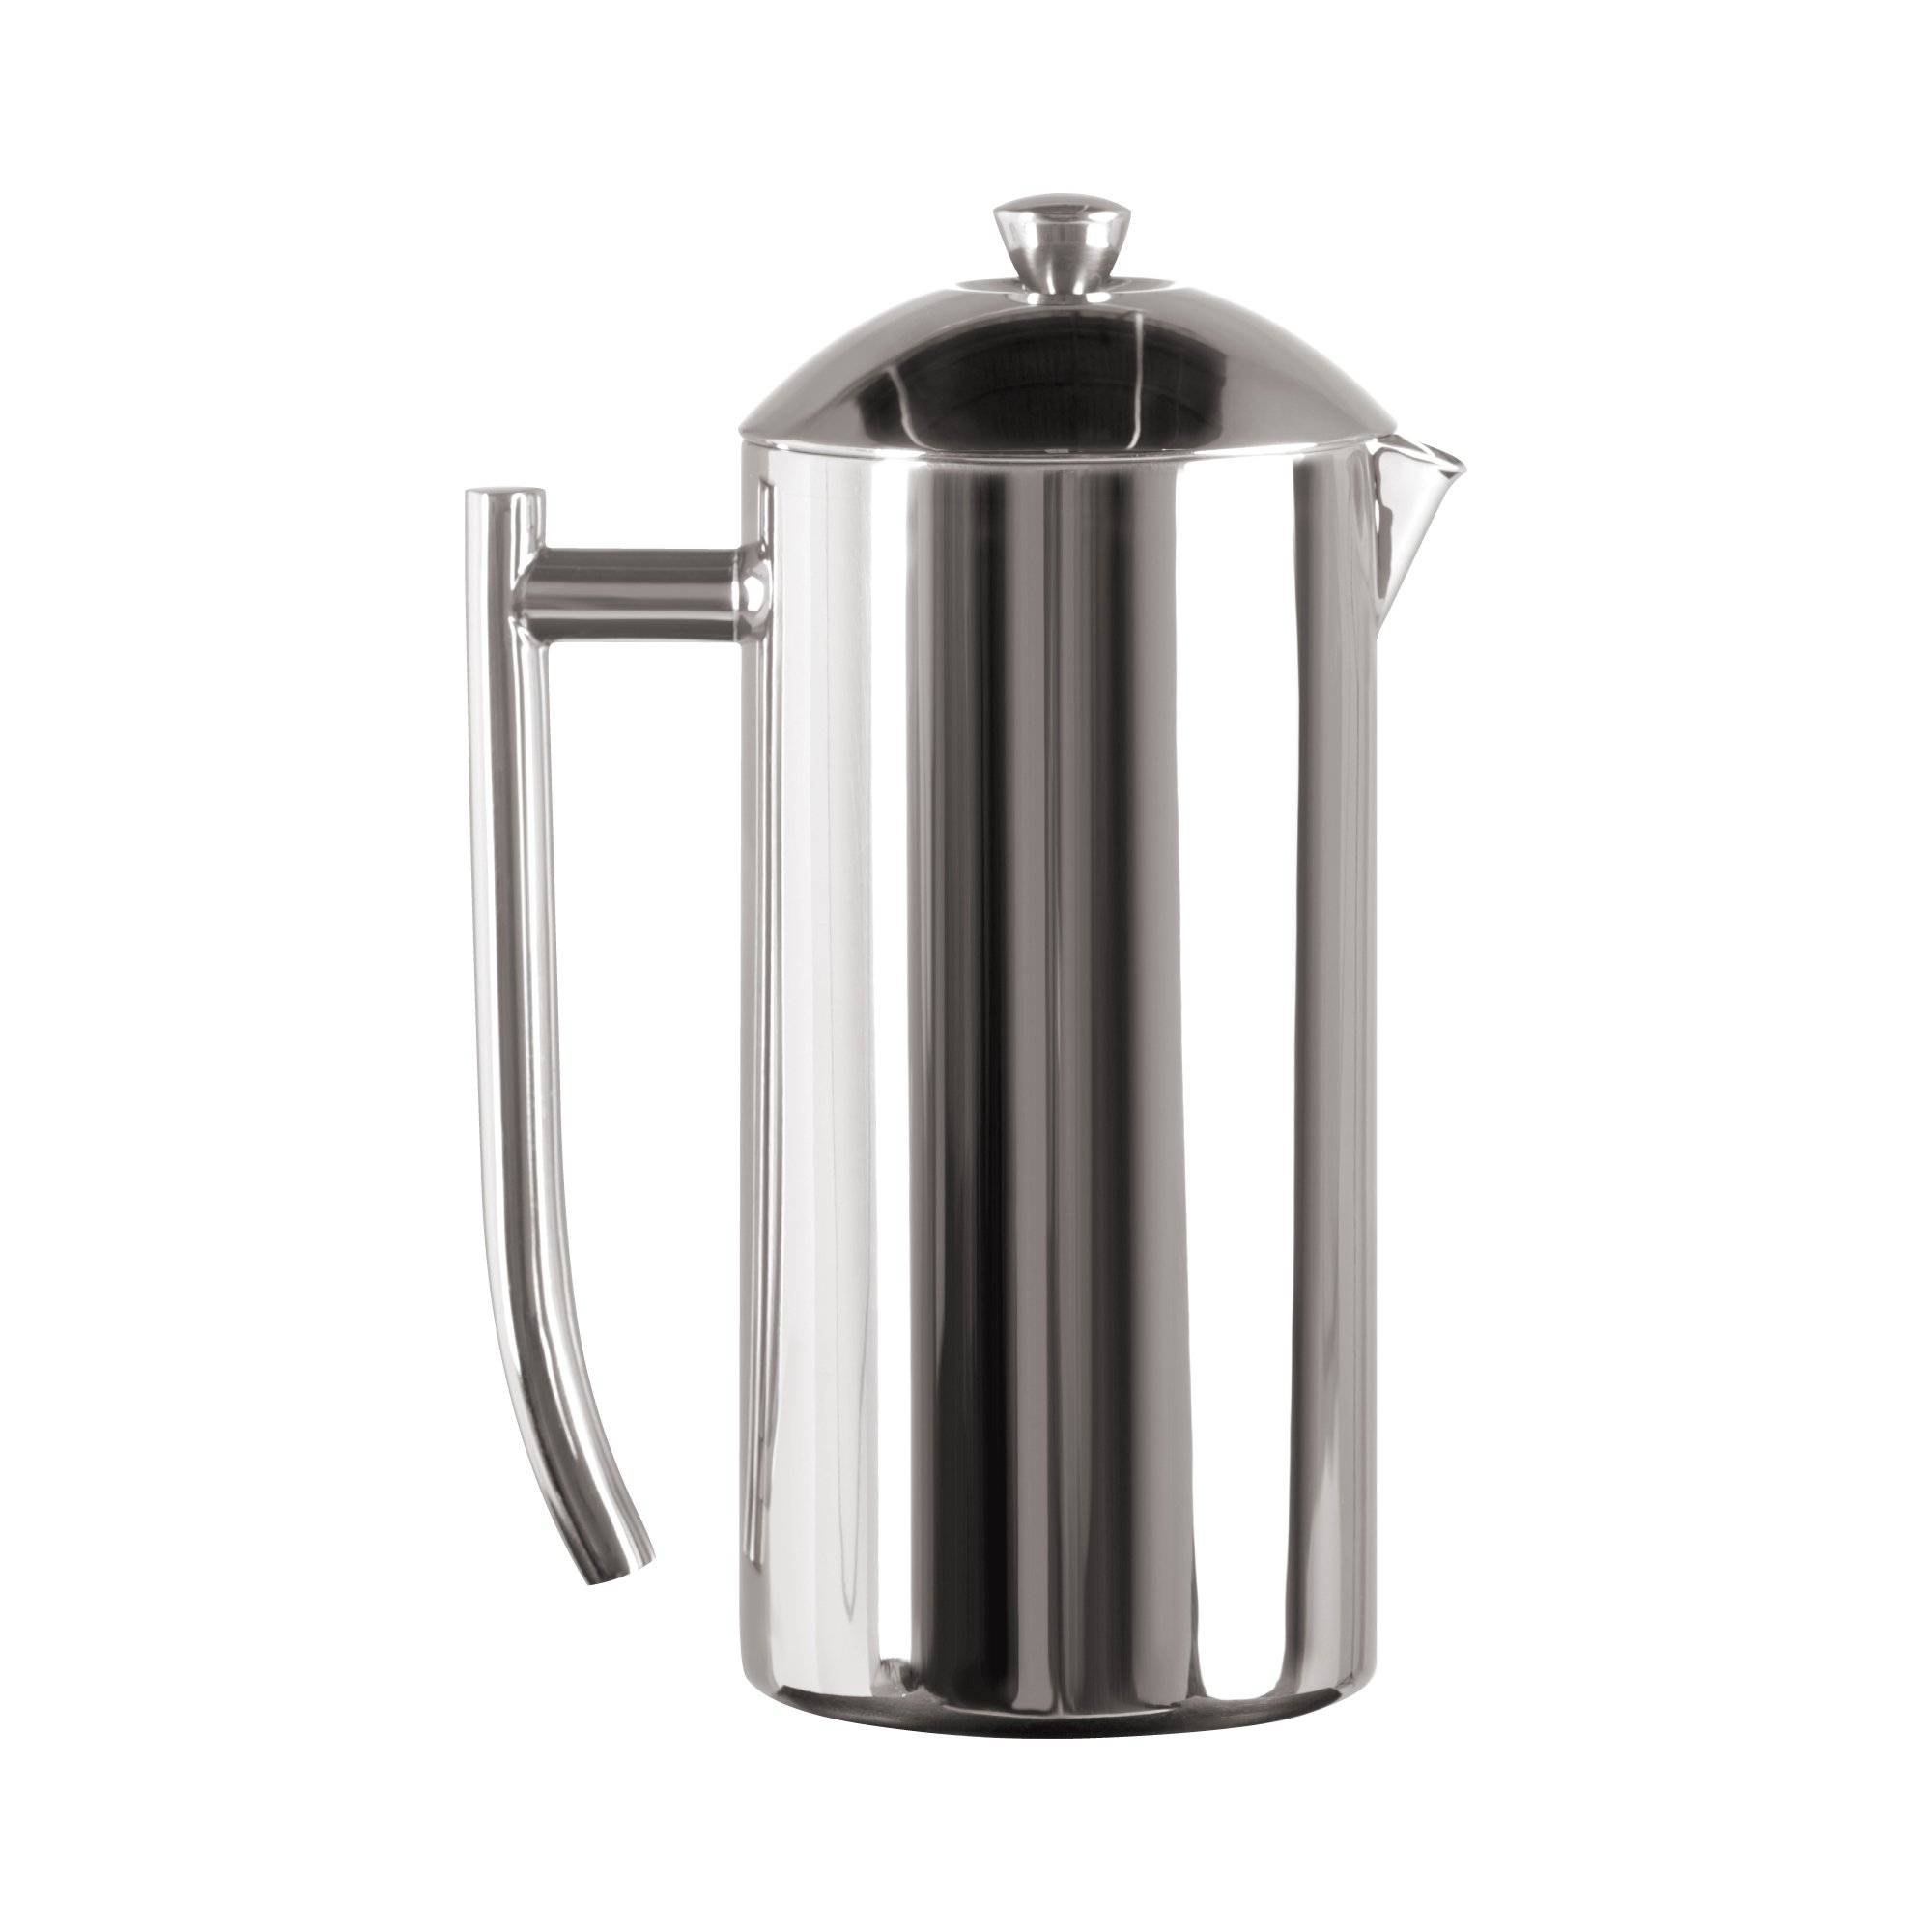 Frieling USA Double Wall Stainless Steel French Press Coffee Maker with Patented Dual Screen in Frustration Free Packaging, Polished, 36-Ounce